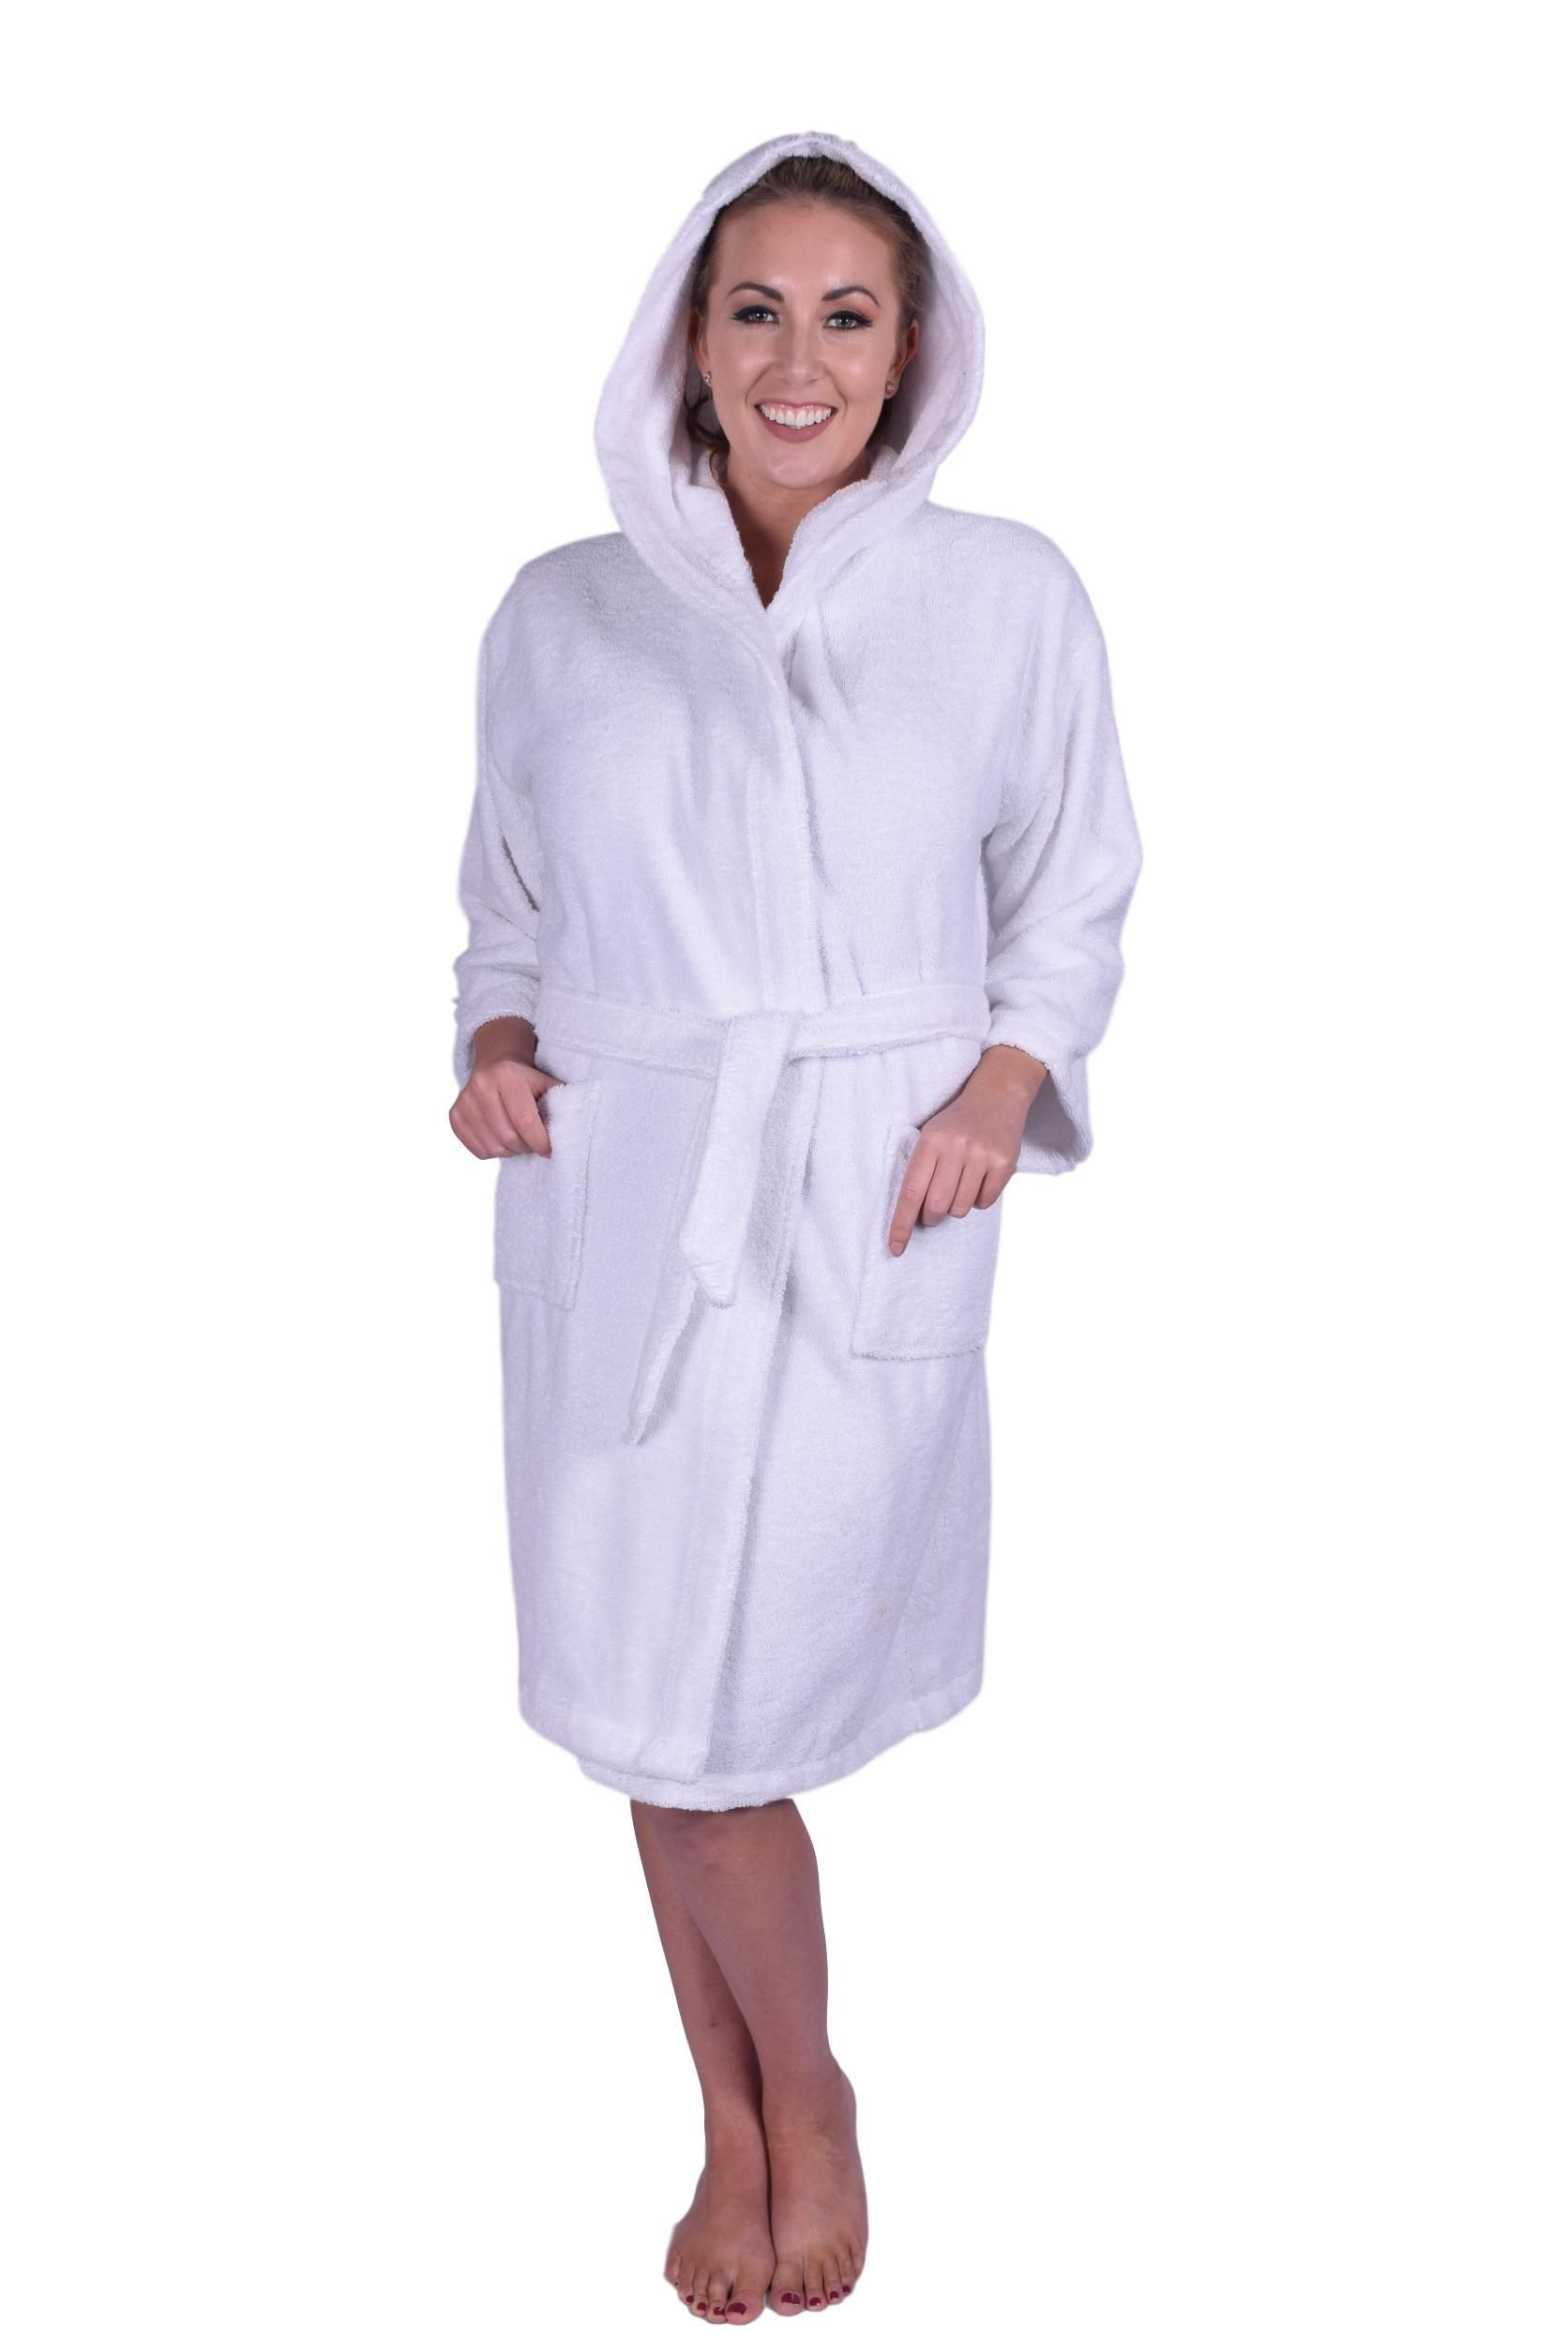 b1e46fbbad Puffy Cotton Teen   Petite Unisex Hoodie Bath Robe 100% Natural Soft Cotton  - White